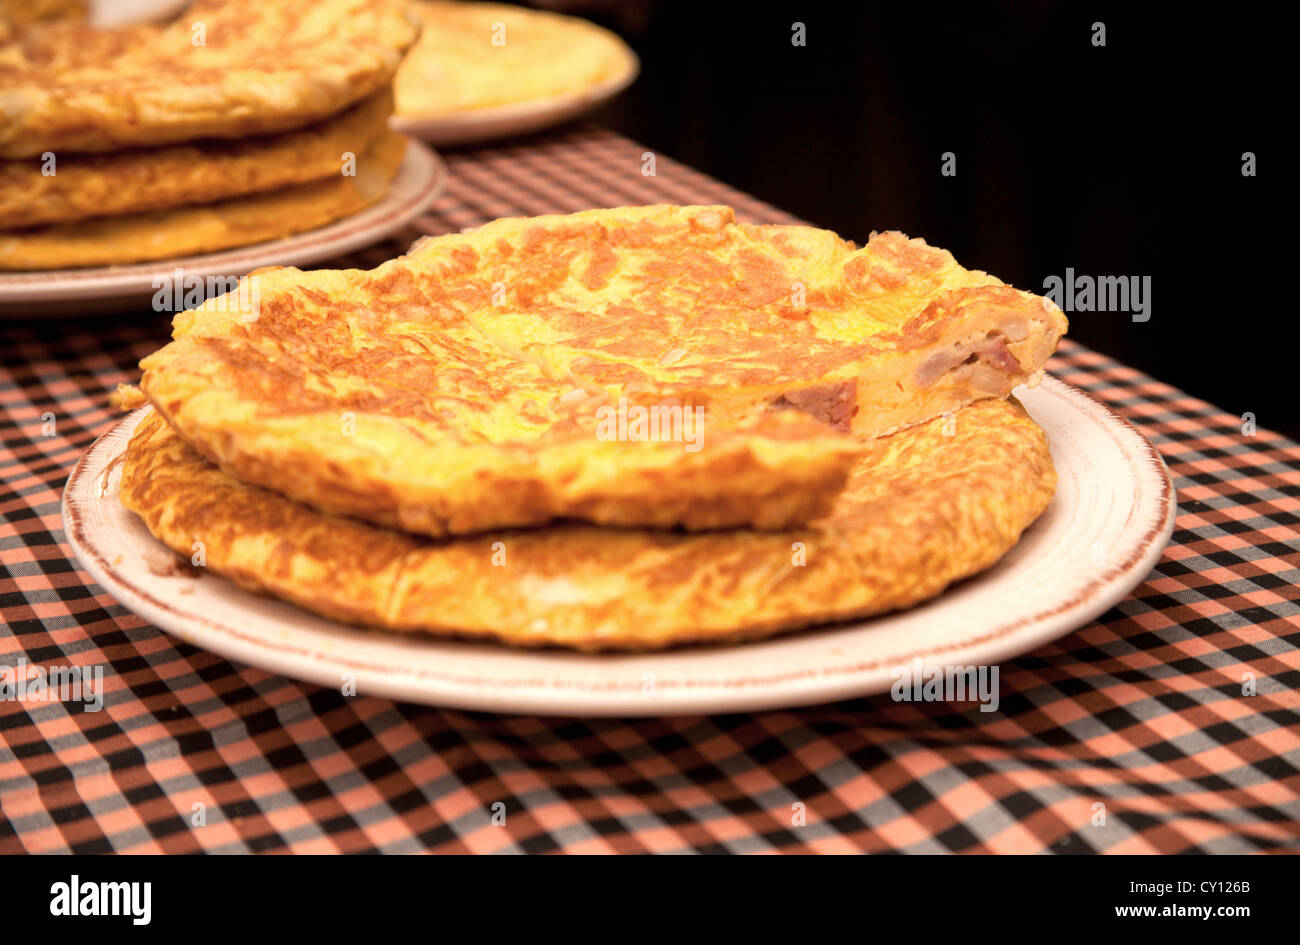 Fresh tortilla (omelet with eggs, potatoes, onion and ham), a typical Spanish food. - Stock Image